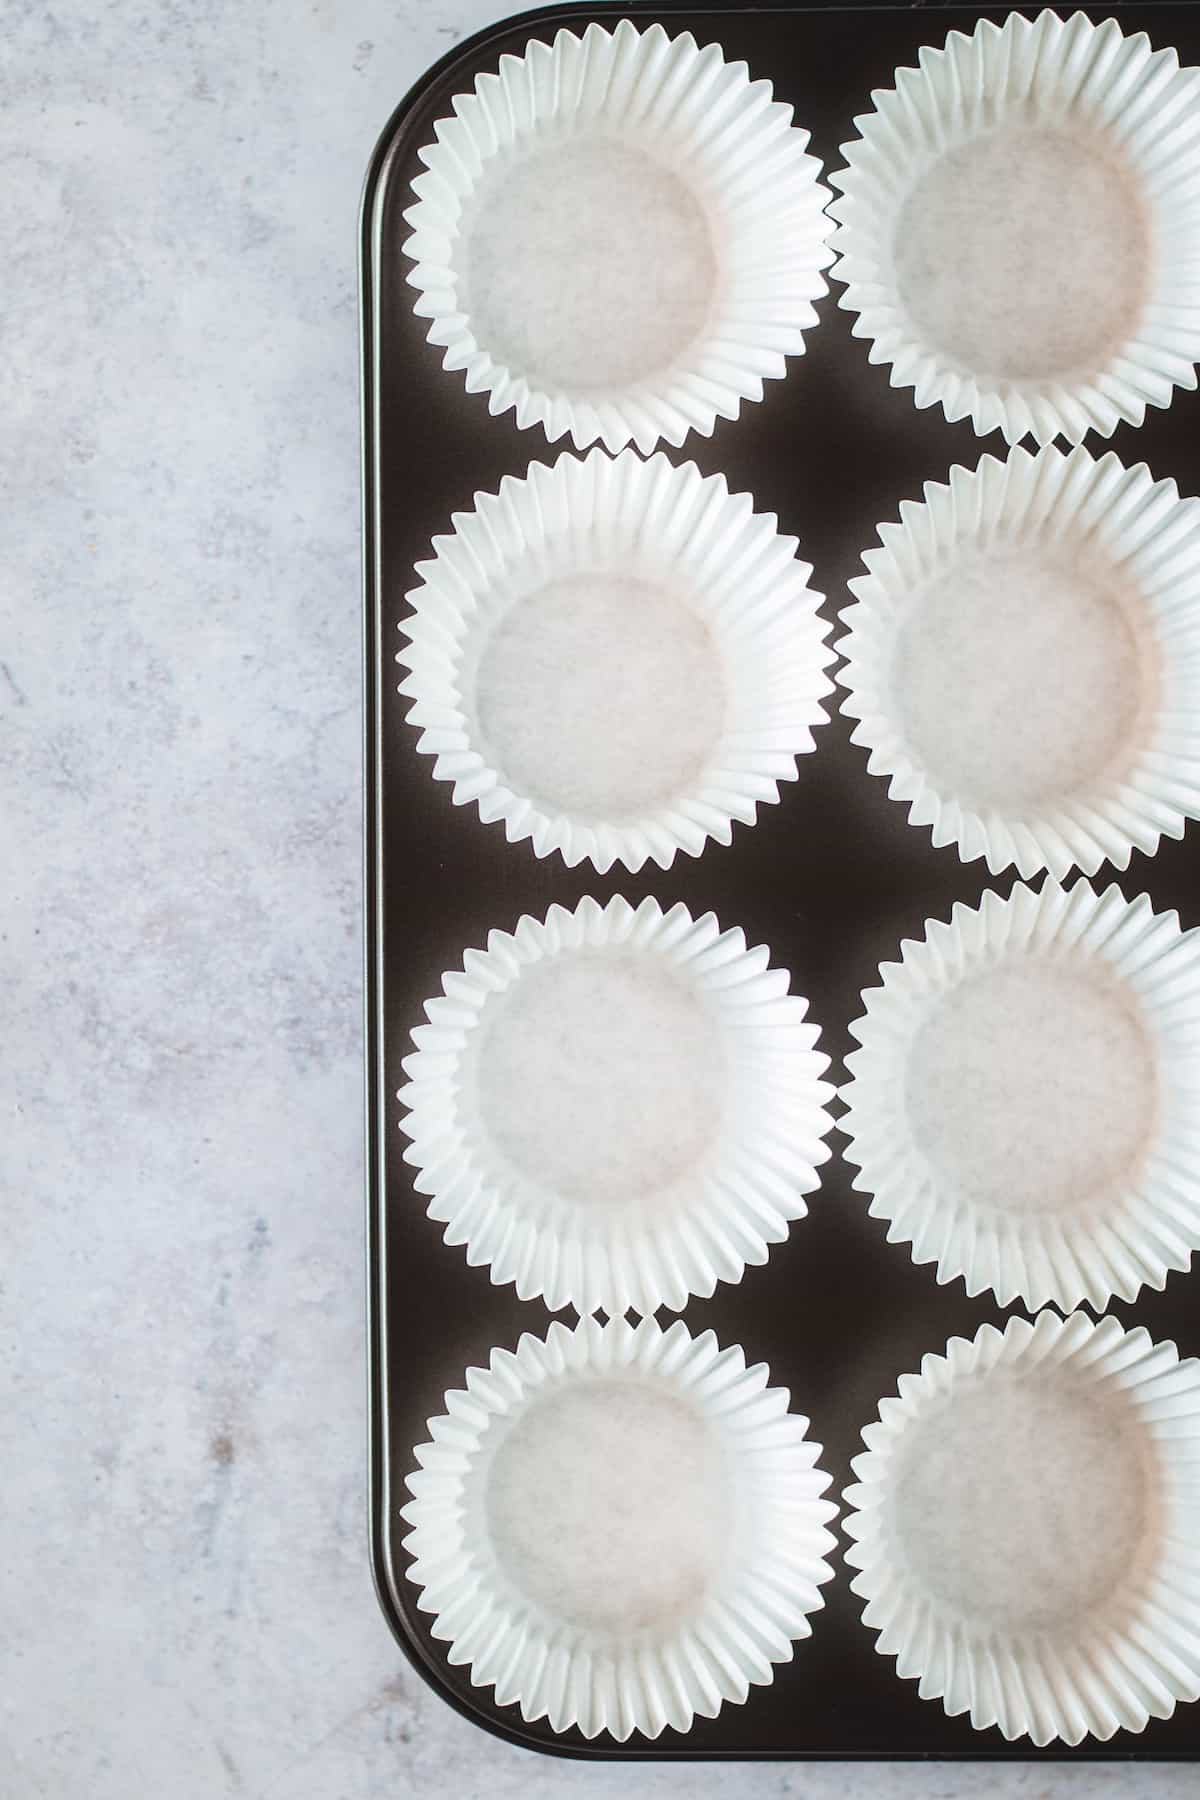 Eight White, Unfilled Cupcake Liners Inside a Metal Cupcake Pan